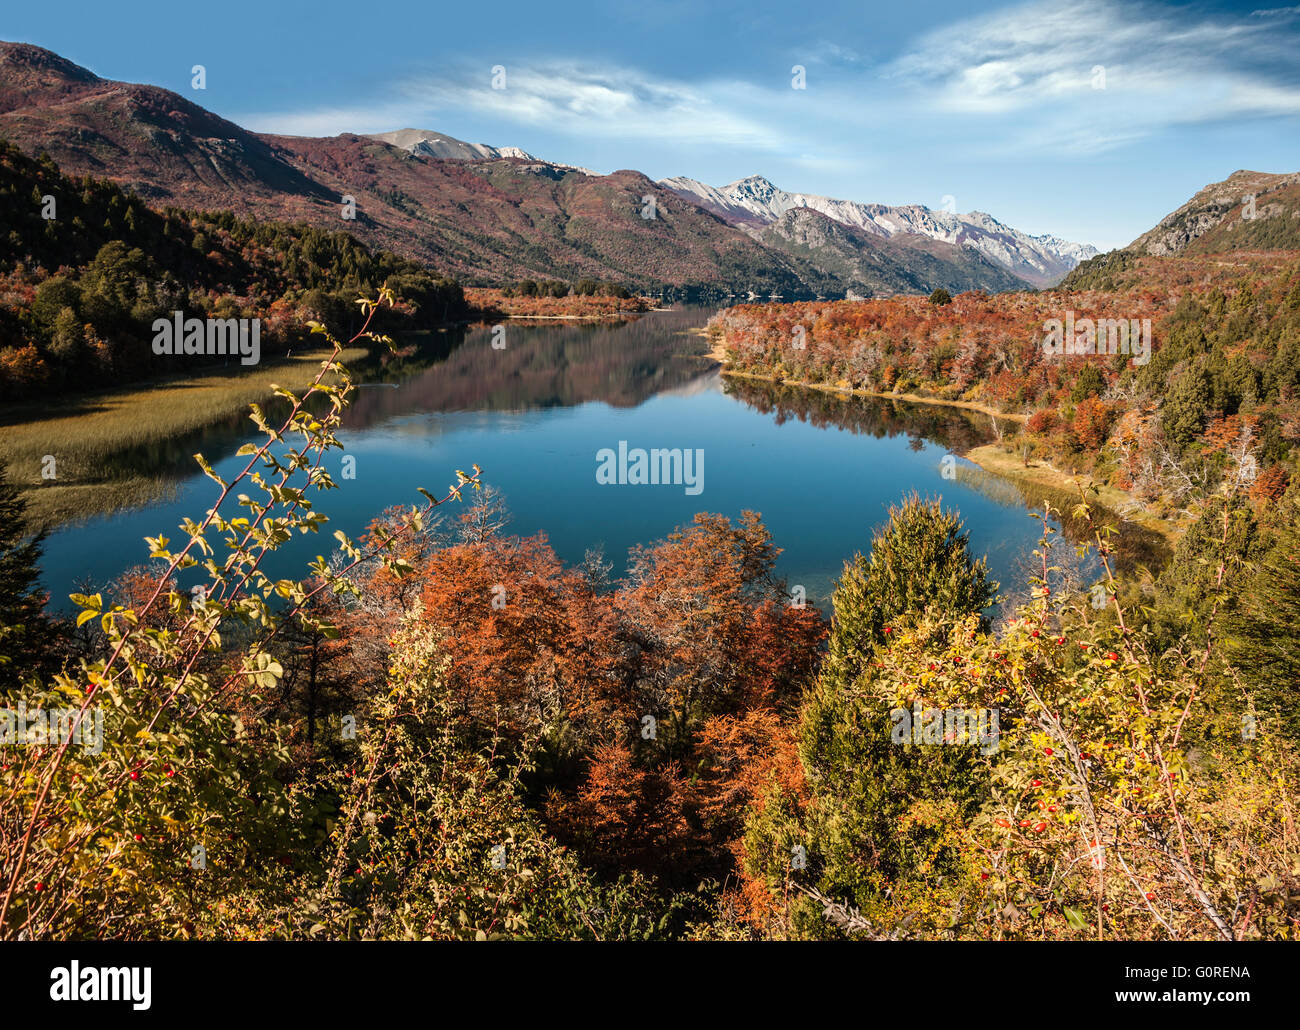 Autumn Colors in Lake Gutierrez, near Bariloche, Patagonia, Argentina - Stock Image